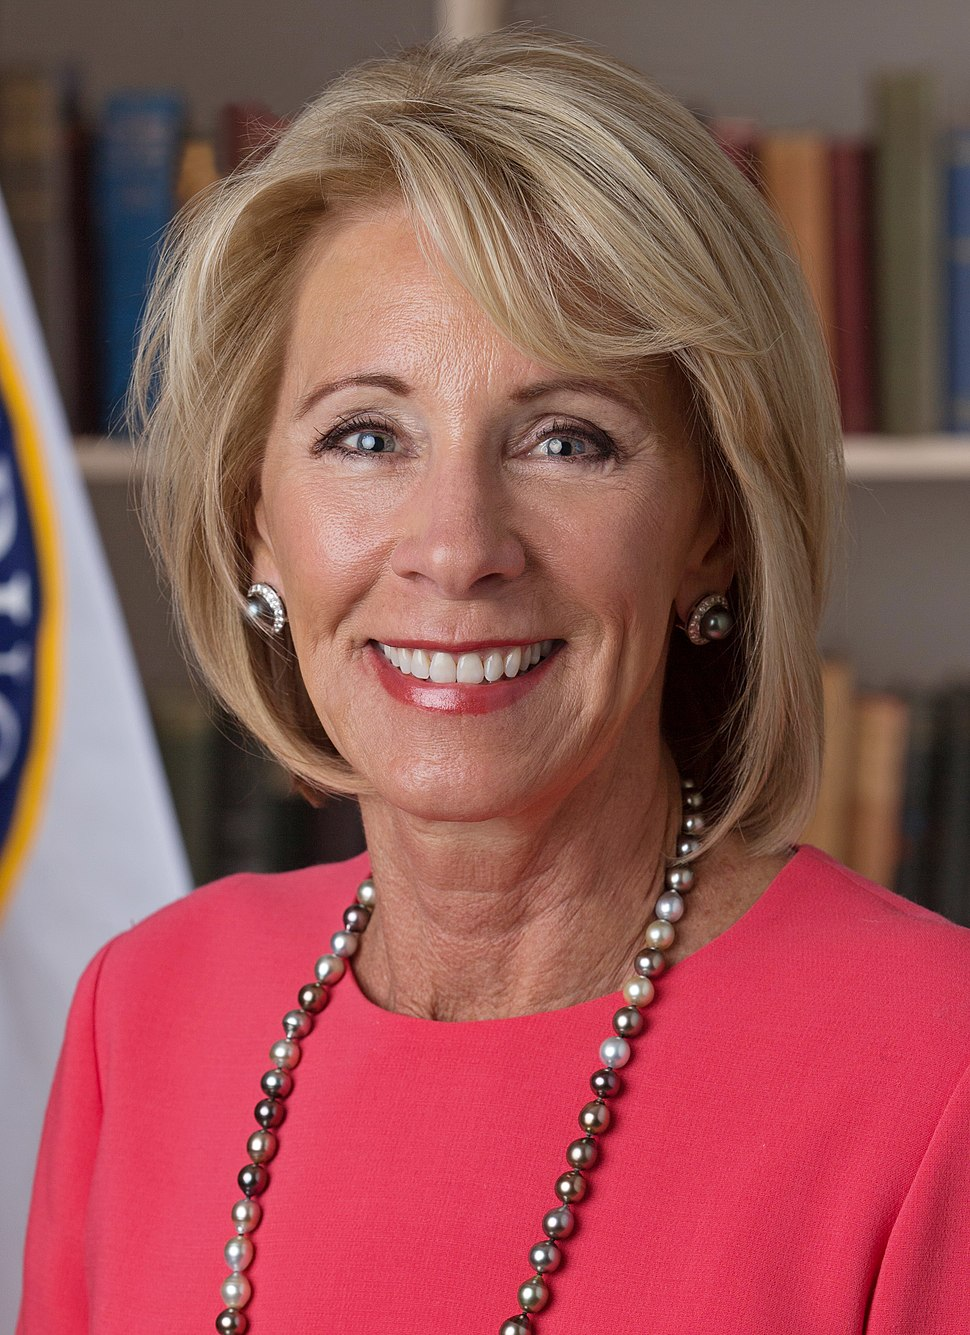 Betsy DeVos official portrait (cropped)